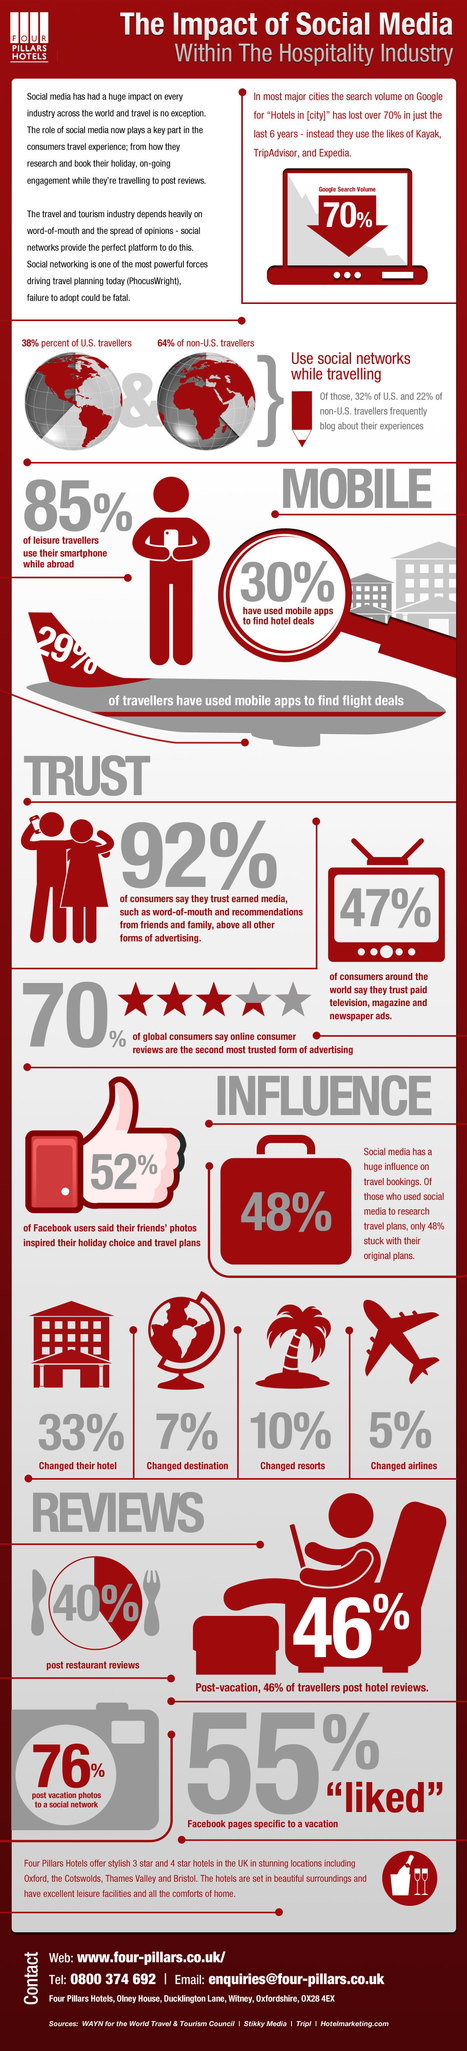 How Social Media is Impacting Travel & Every Industry Across the World [Infographic] | Mediaclub | Scoop.it